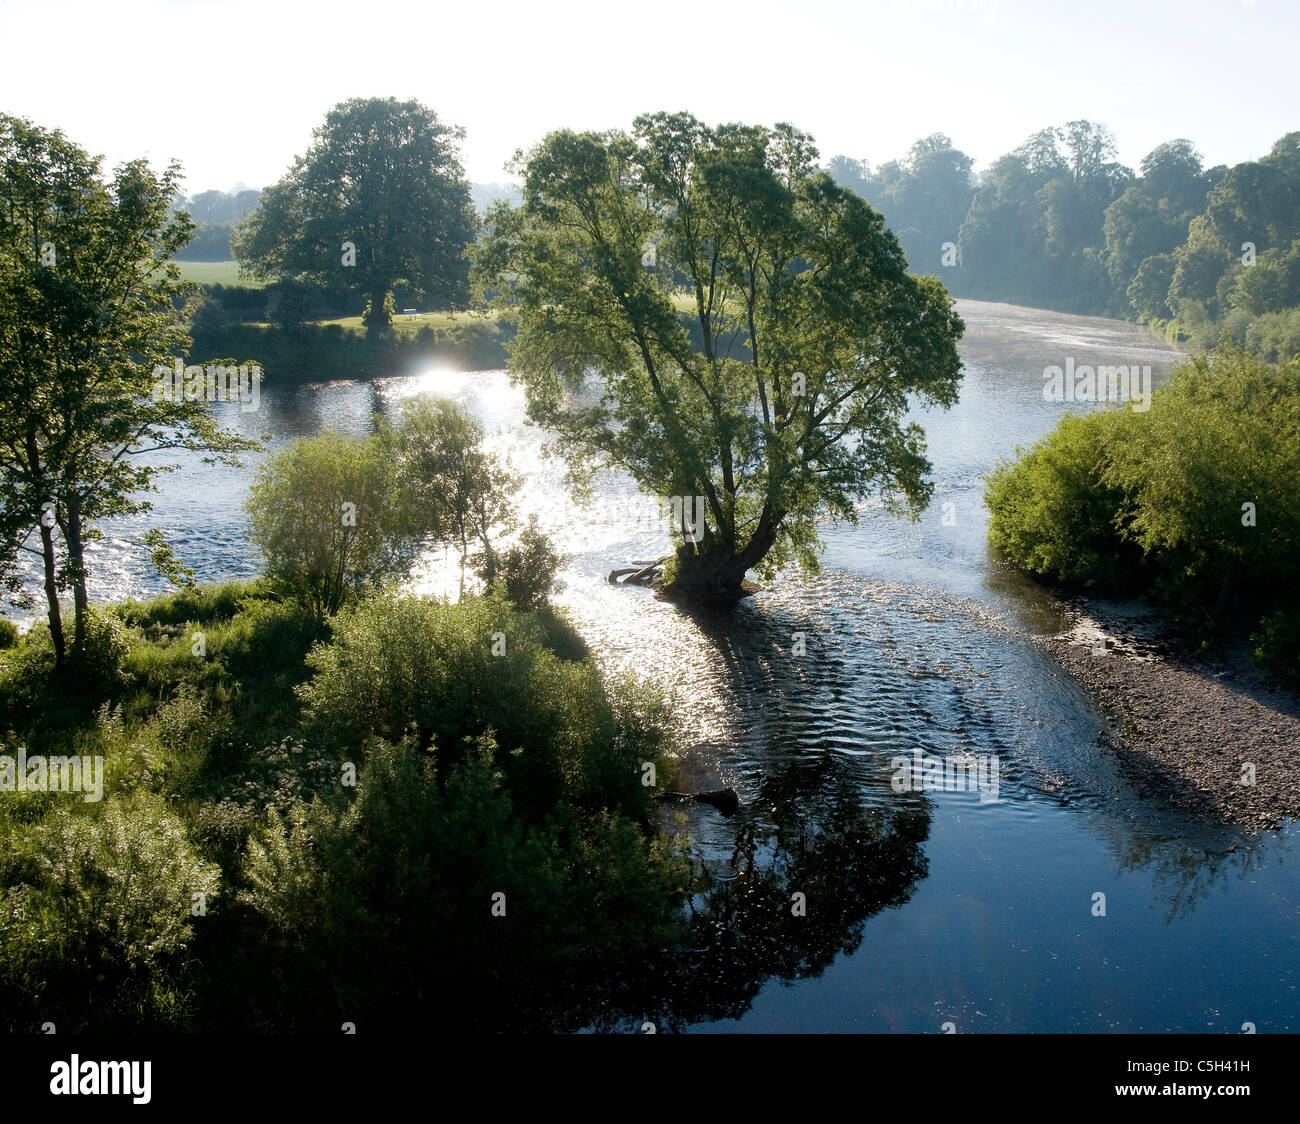 River Tweed and trees in sunlight by Kelso - Stock Image